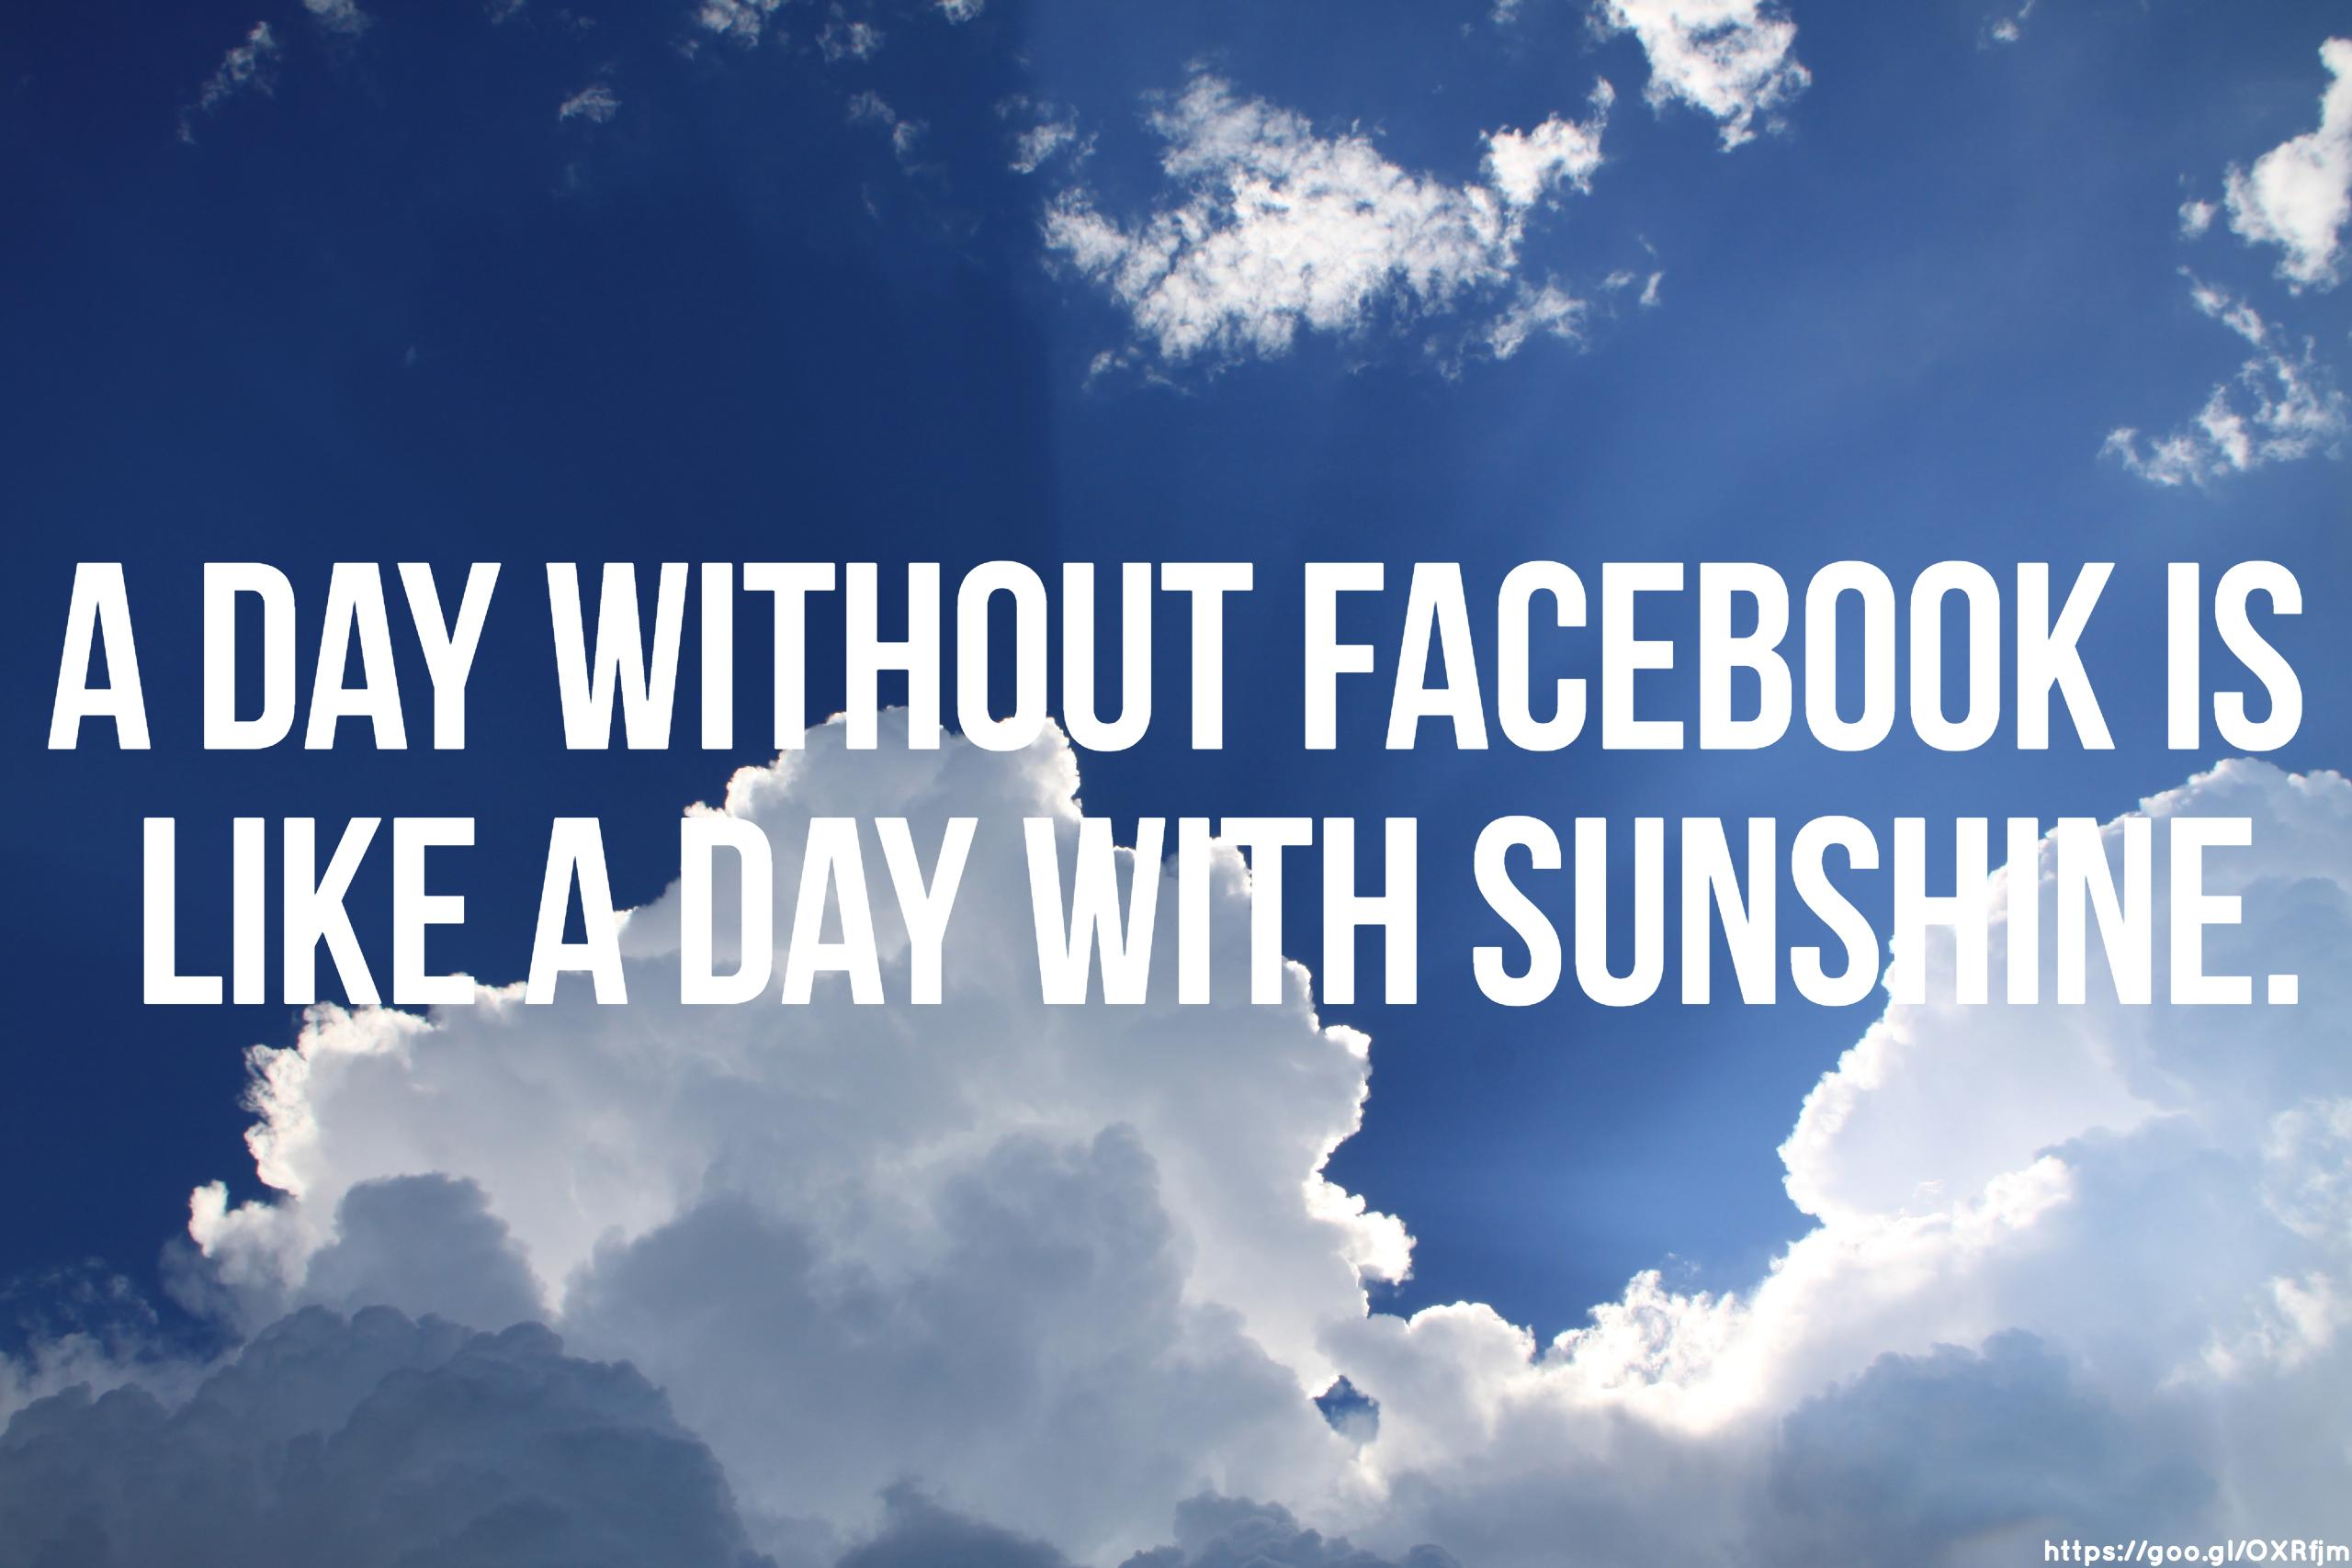 A day without Facebook is like a day with sunshine.